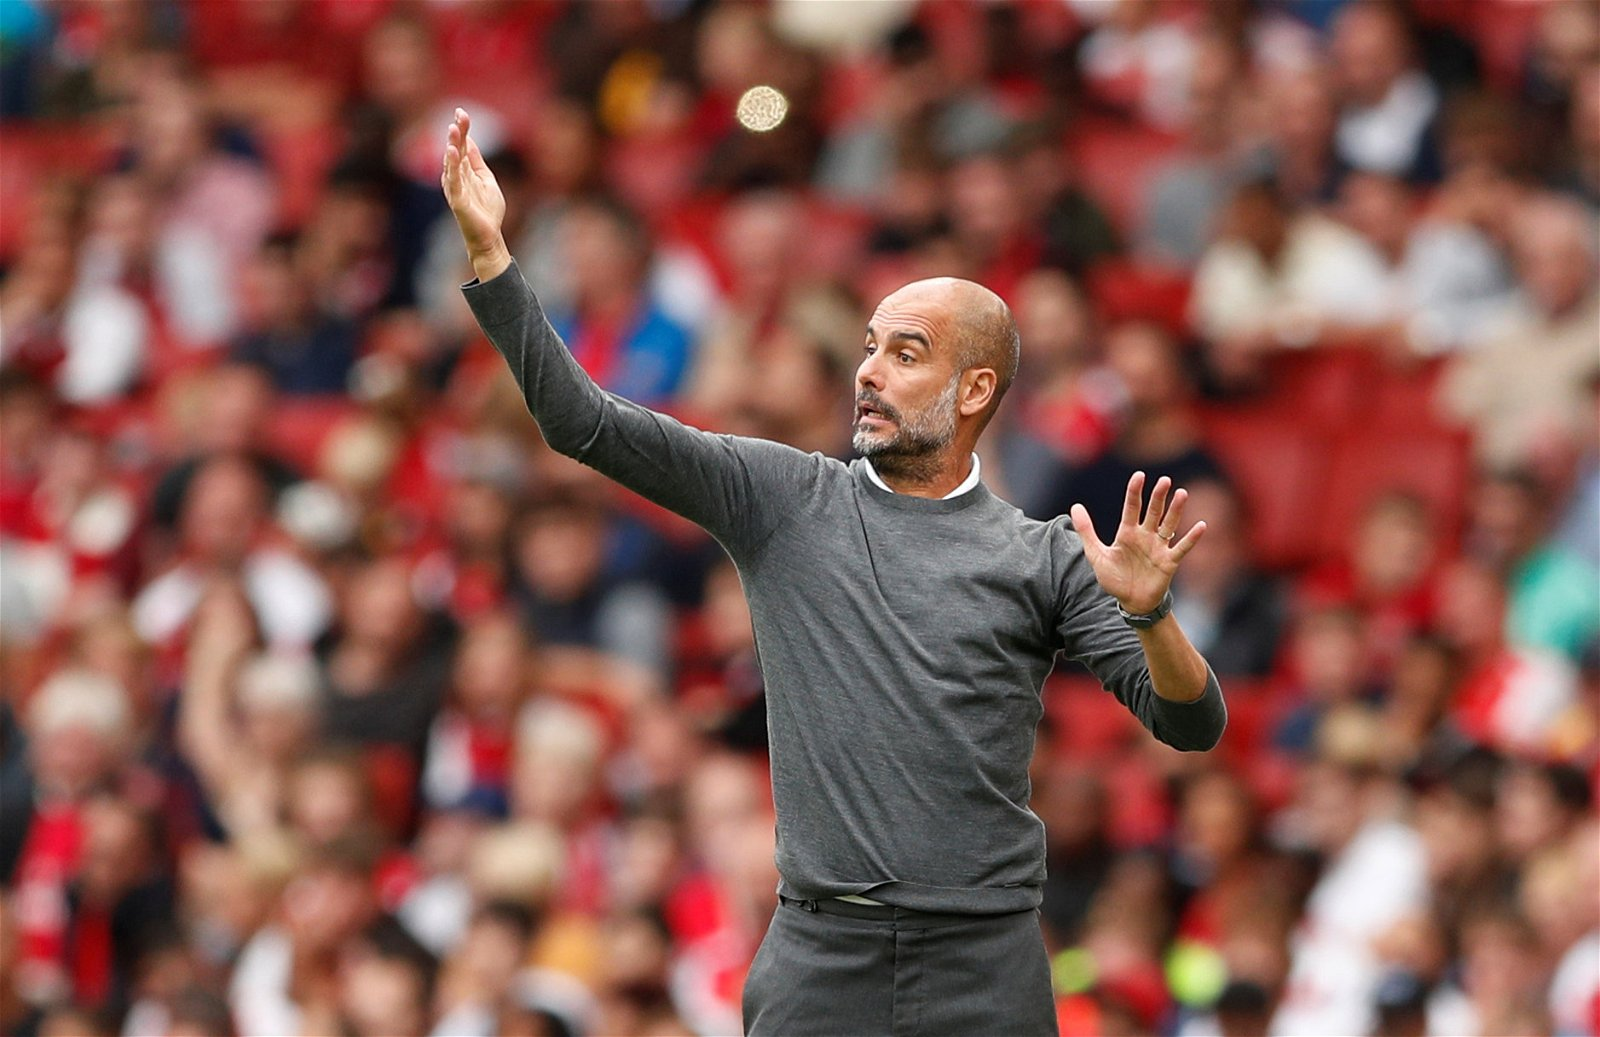 If there are questions over Man City, what does that say about the rest of the league?